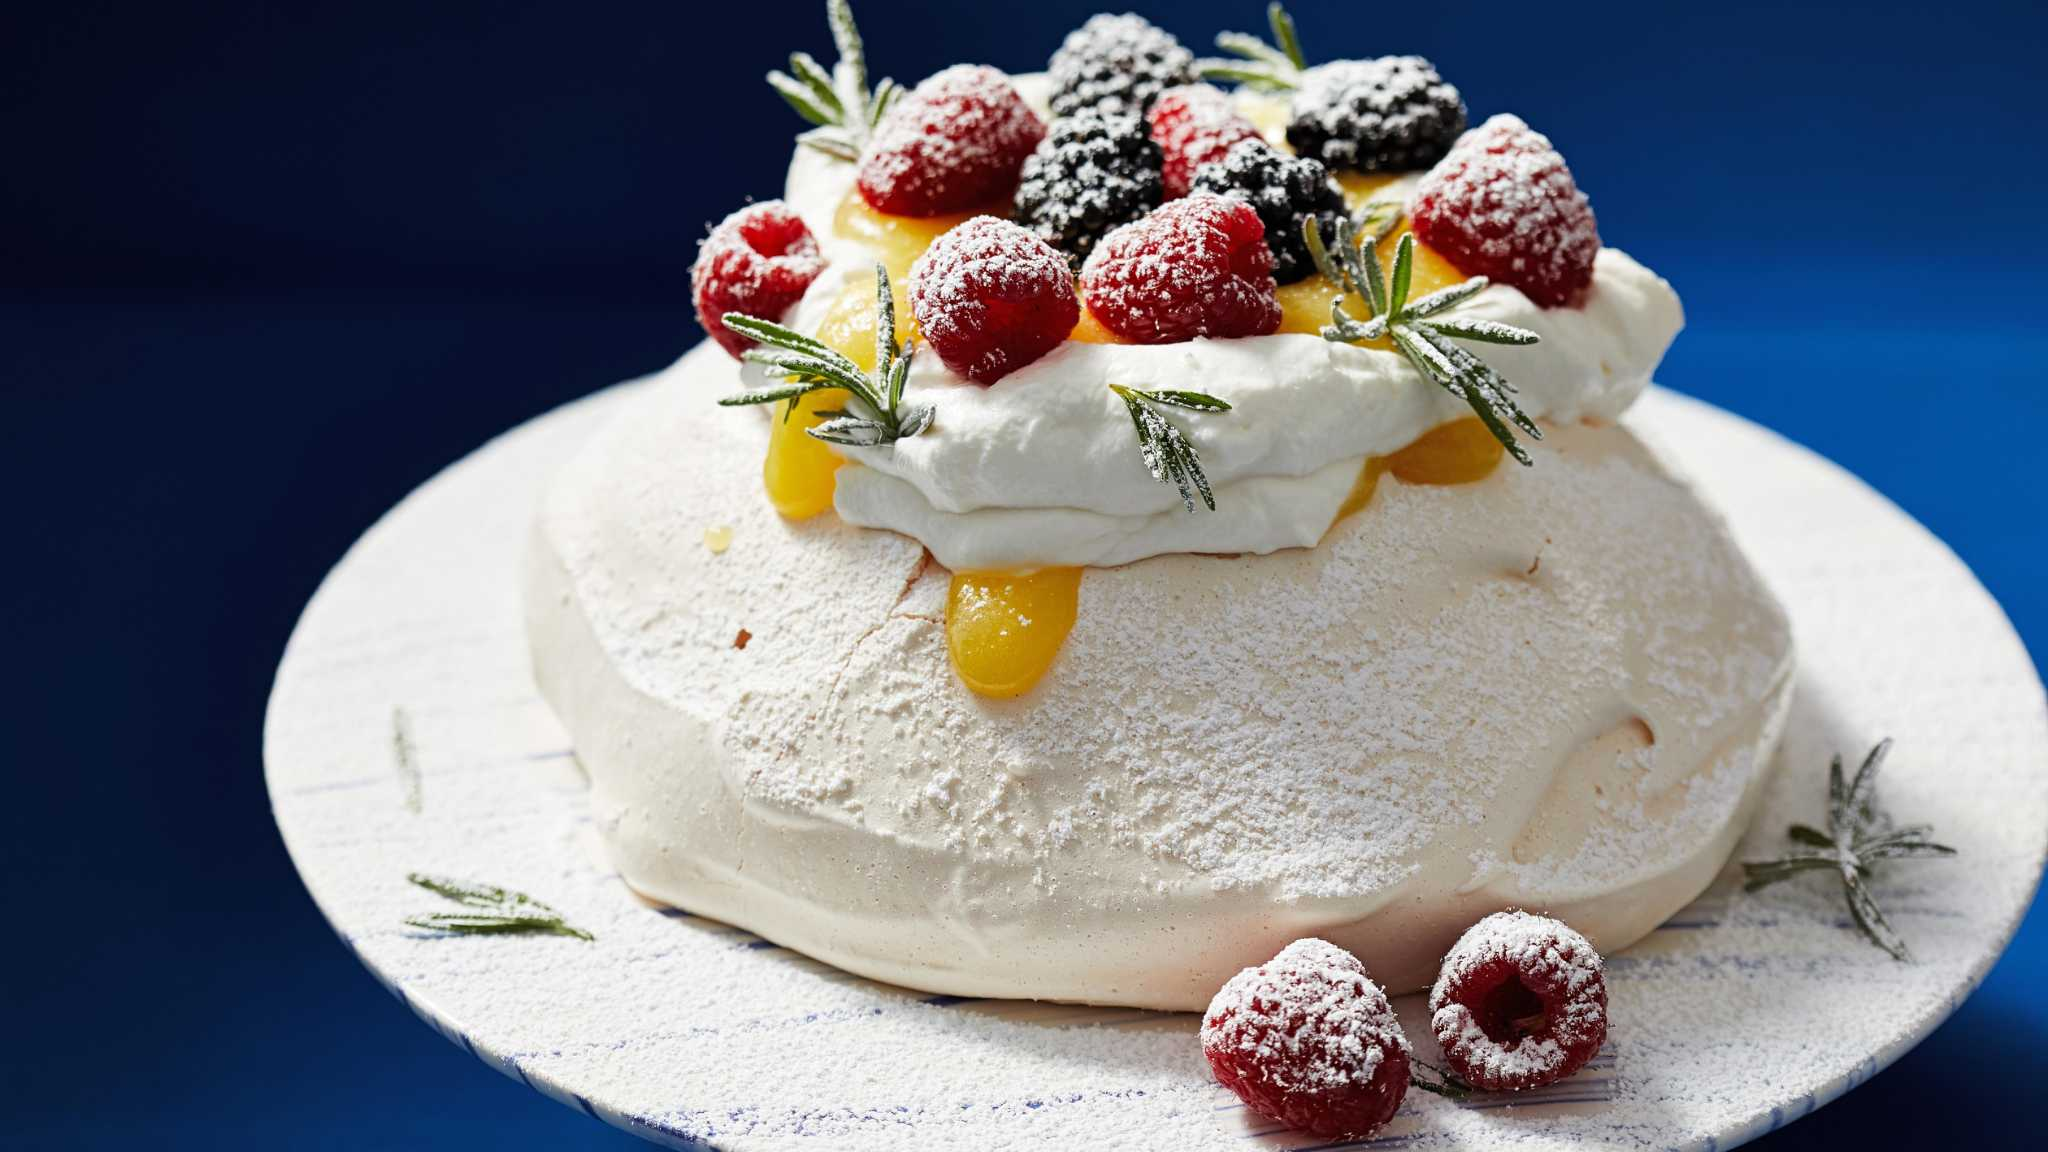 With just 2 egg whites and some sugar, you can make a showstopping pavlova for dessert